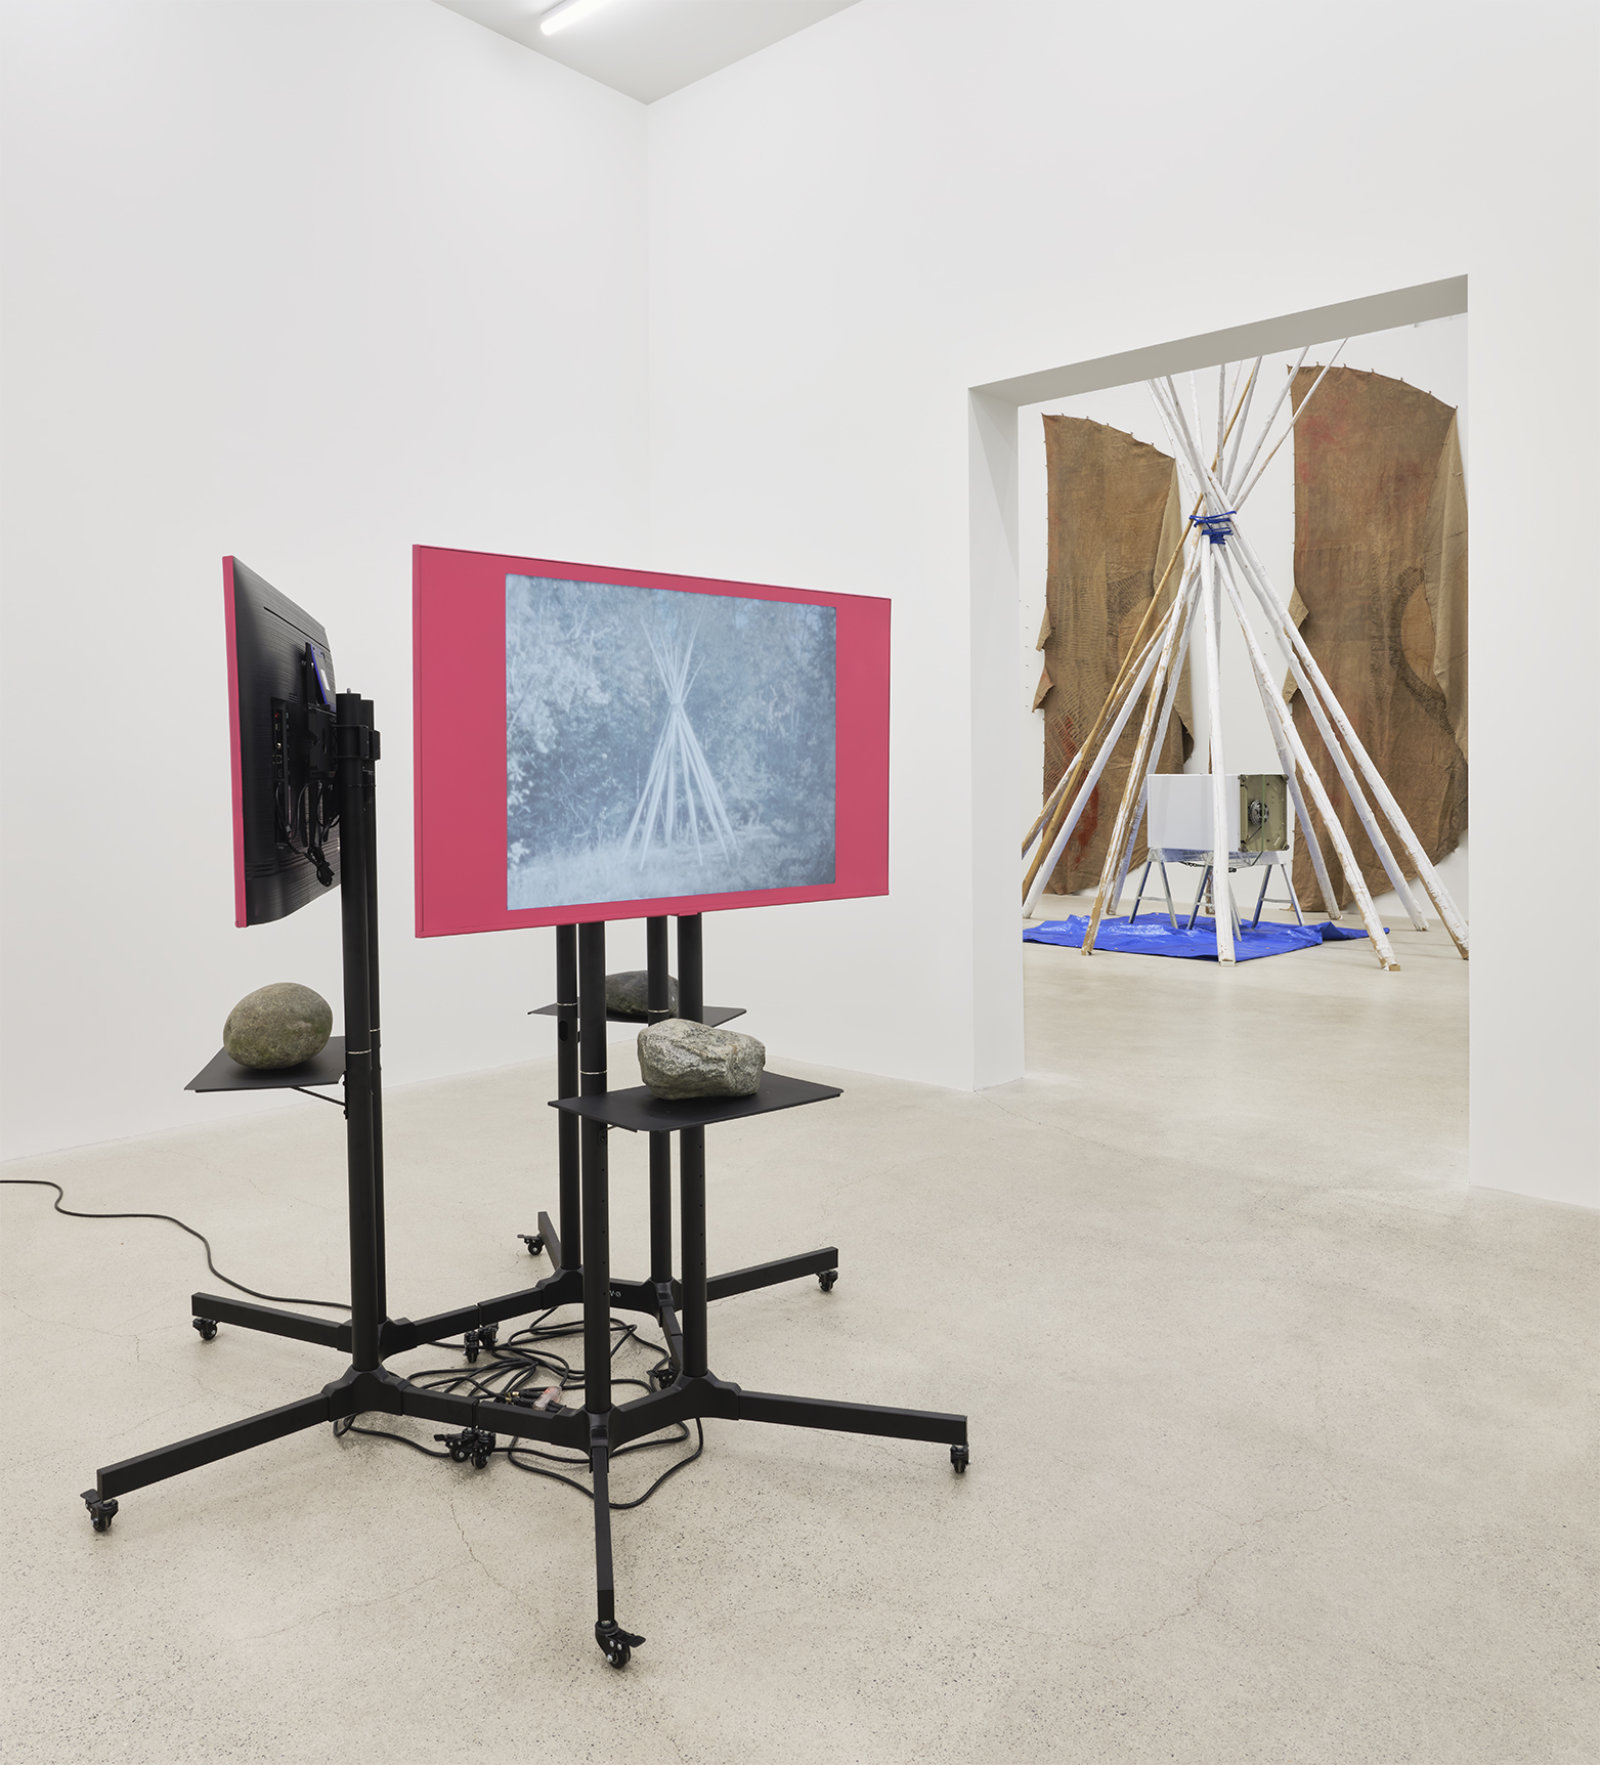 Duane Linklater, primaryuse, 2020, lcd screens, television stands, media players, spray paint, stones, 3 super 8mm film transfers to 2k video with audio, score by eagles with eyes closed, looping: 5 minutes, 19 seconds; 5 minutes, 10 seconds; 5 minutes, 23 seconds; 69 x 72 x 72 in. (175 x 183 x 183 cm)